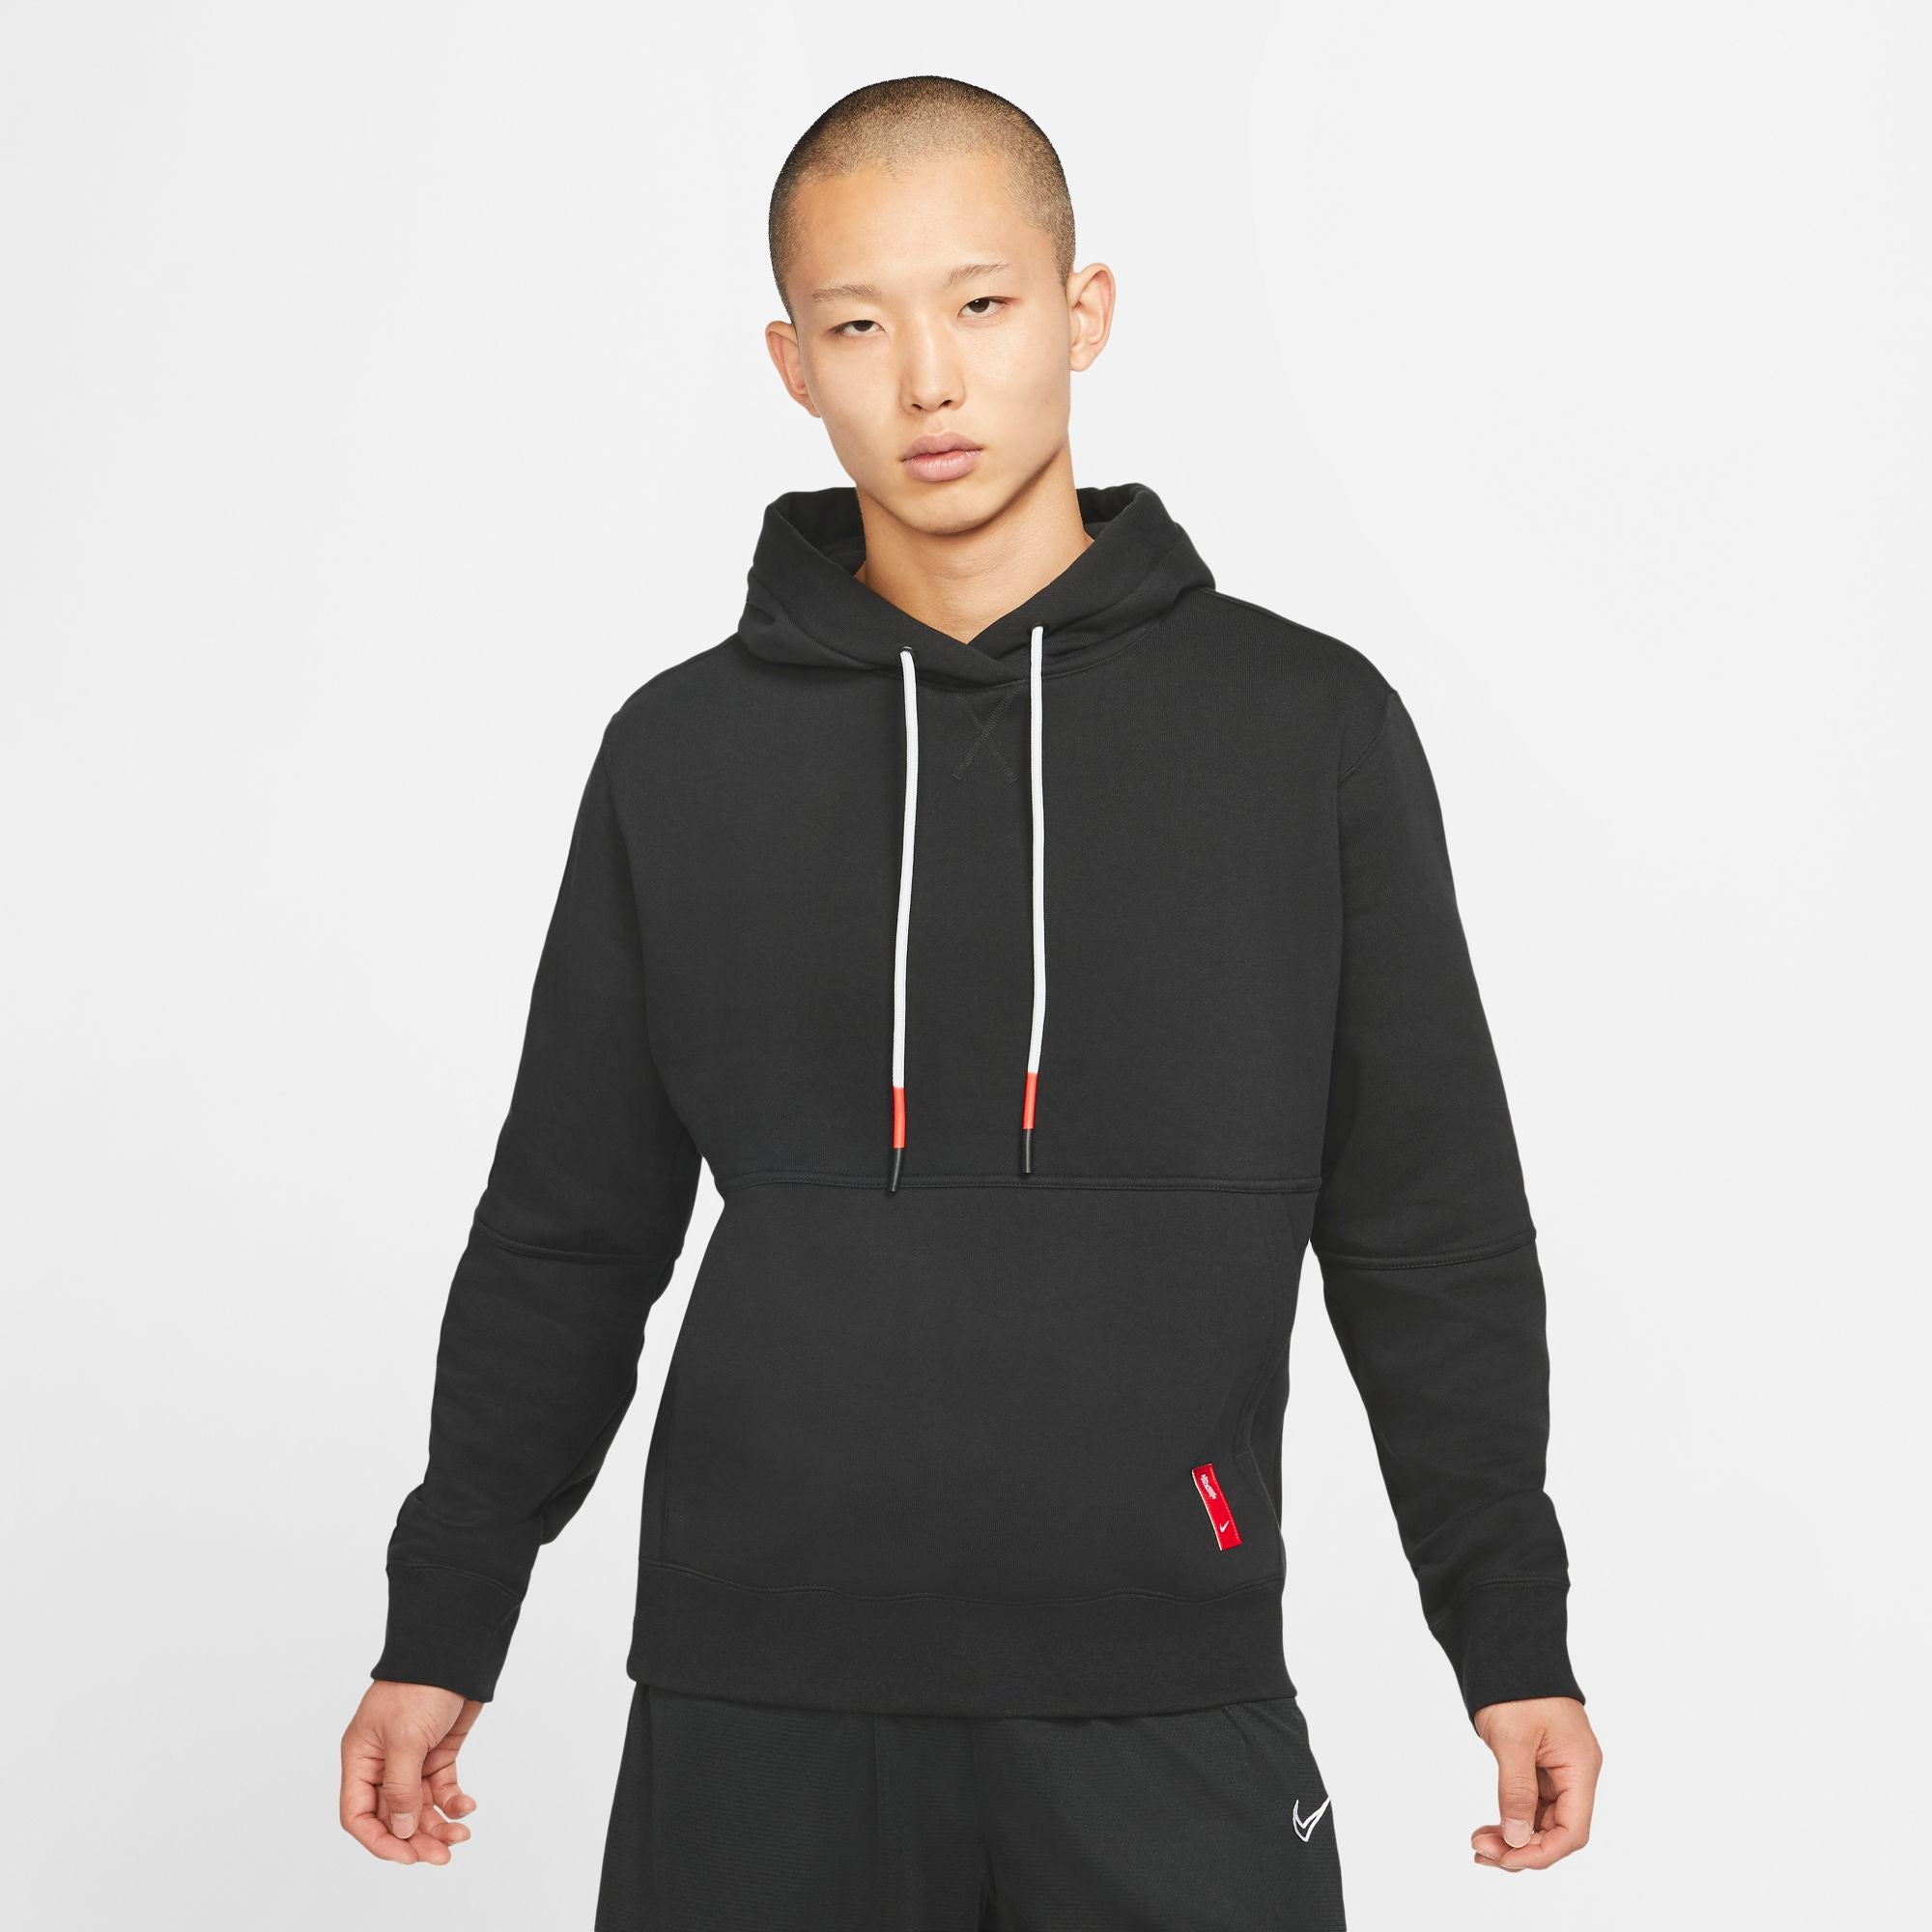 Nike Kyrie Basketball Go-To Pullover Hoody - Black/Chile Red NK-CK6745-010